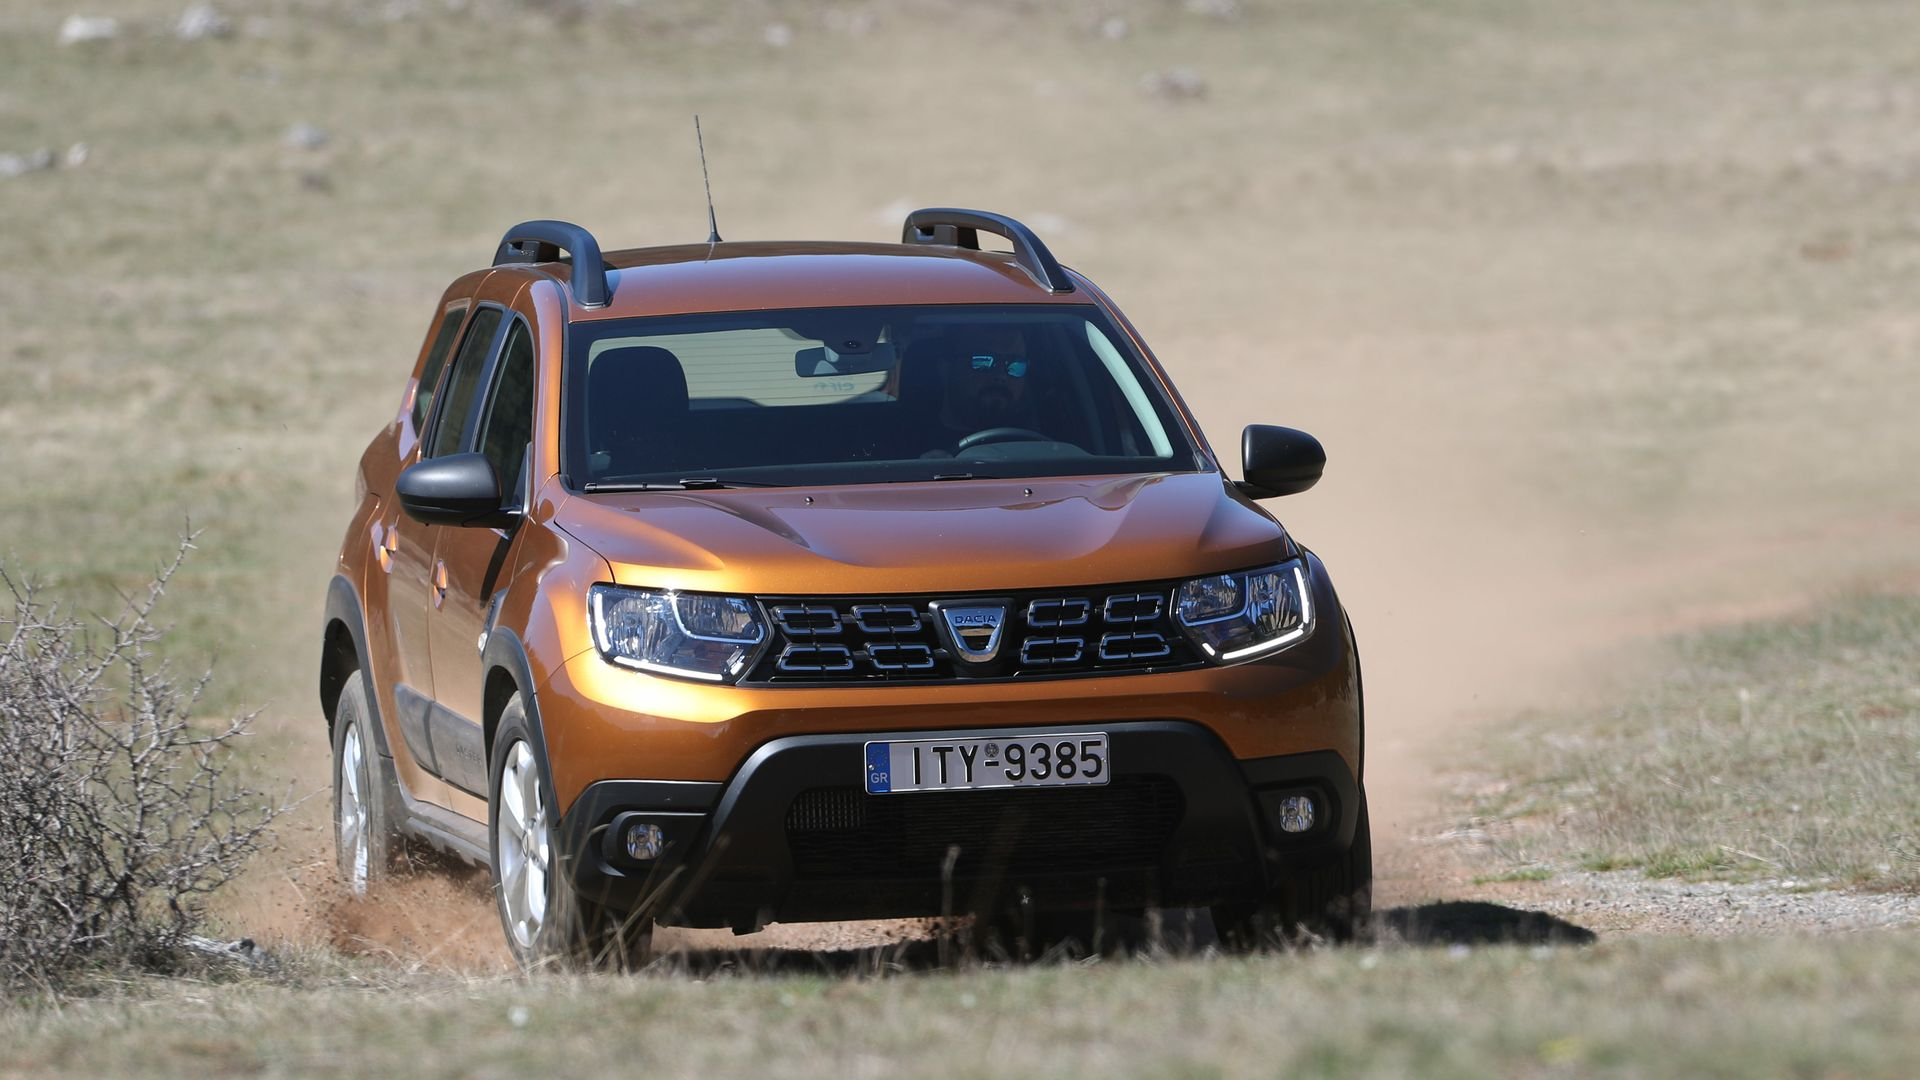 Dacia Duster 1.5 dCi 4x4 off road